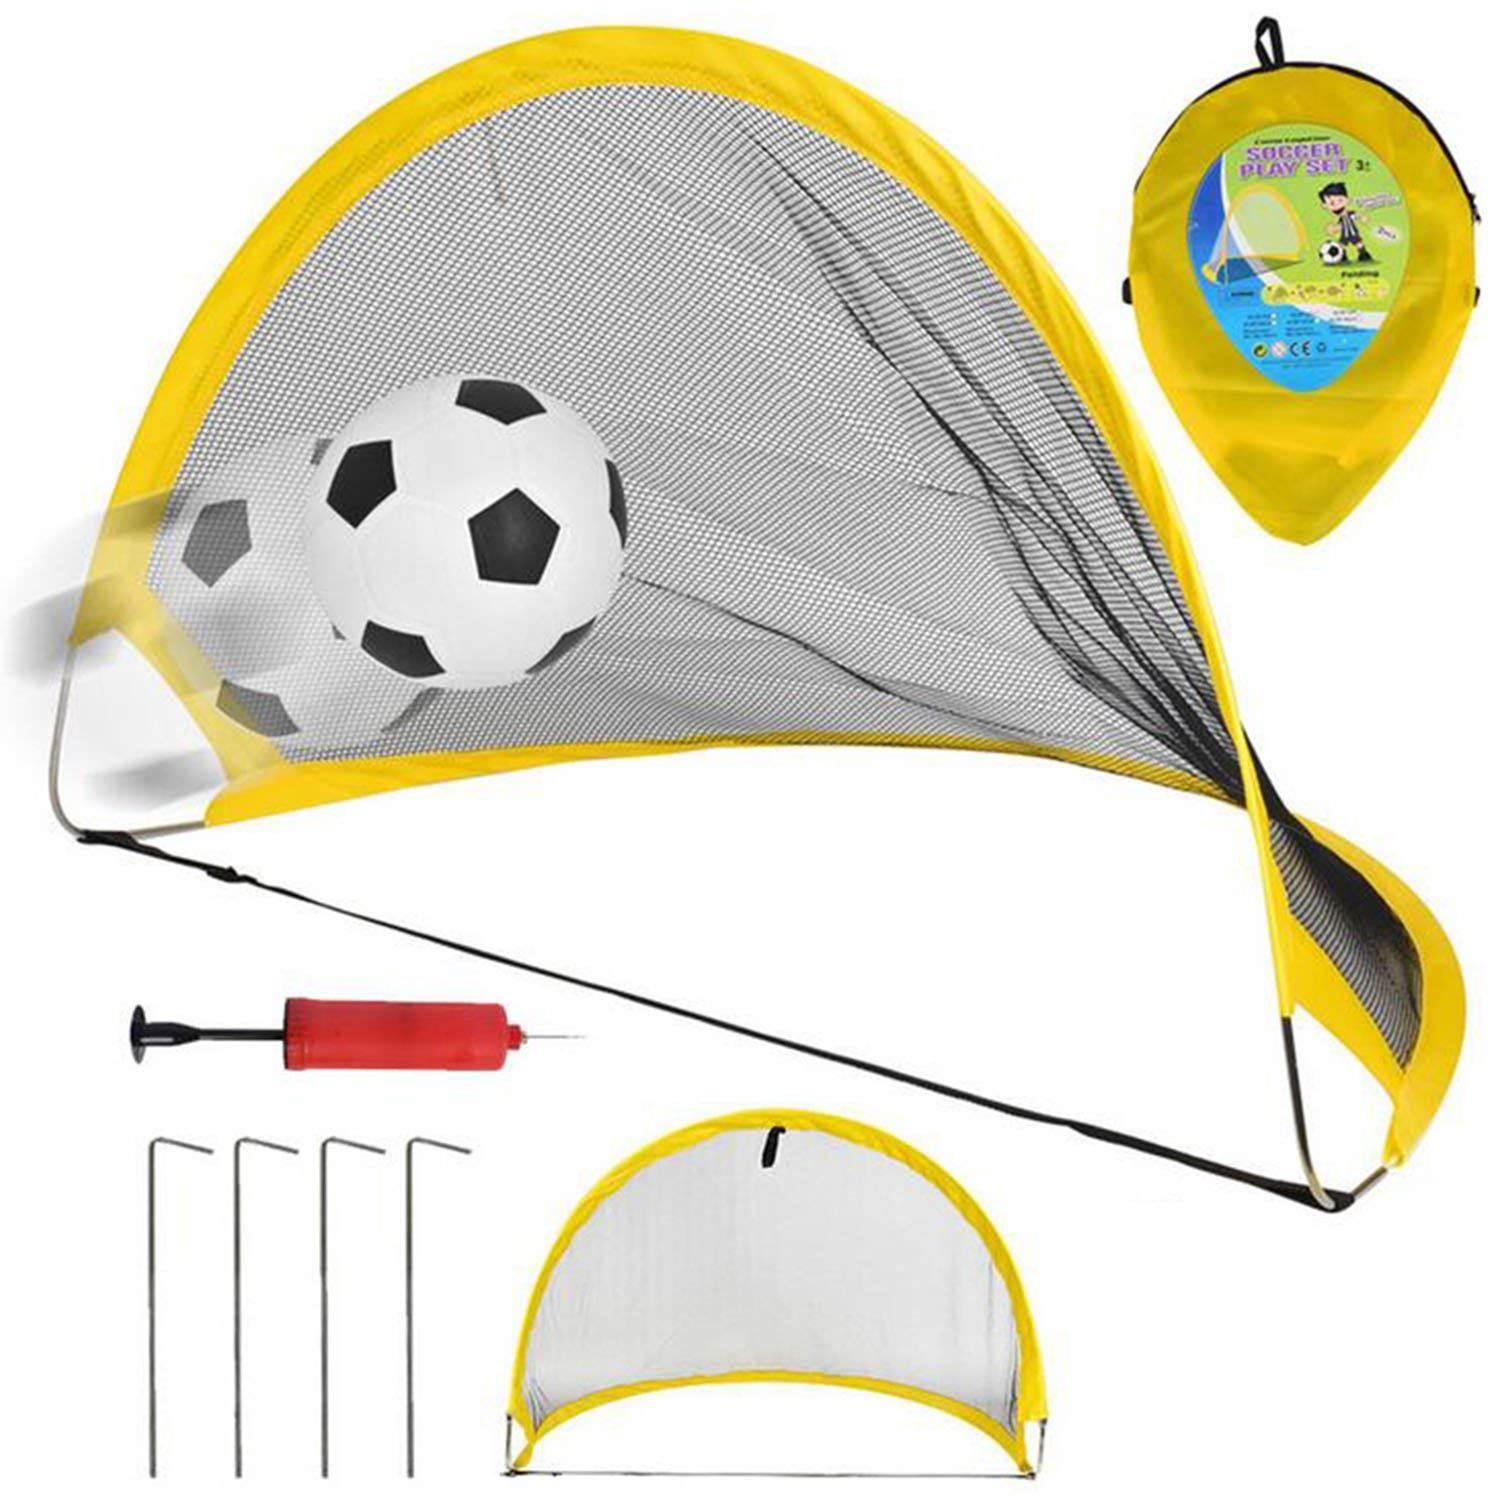 5b390feb1 NiGHT LiONS TECH 26.7 inch Collapsible Soccer Goal Set of 2 with Travel Bag  - Soccer Training Nets Ultra Portable Pop Up Football Goal Nets for Indoor  ...